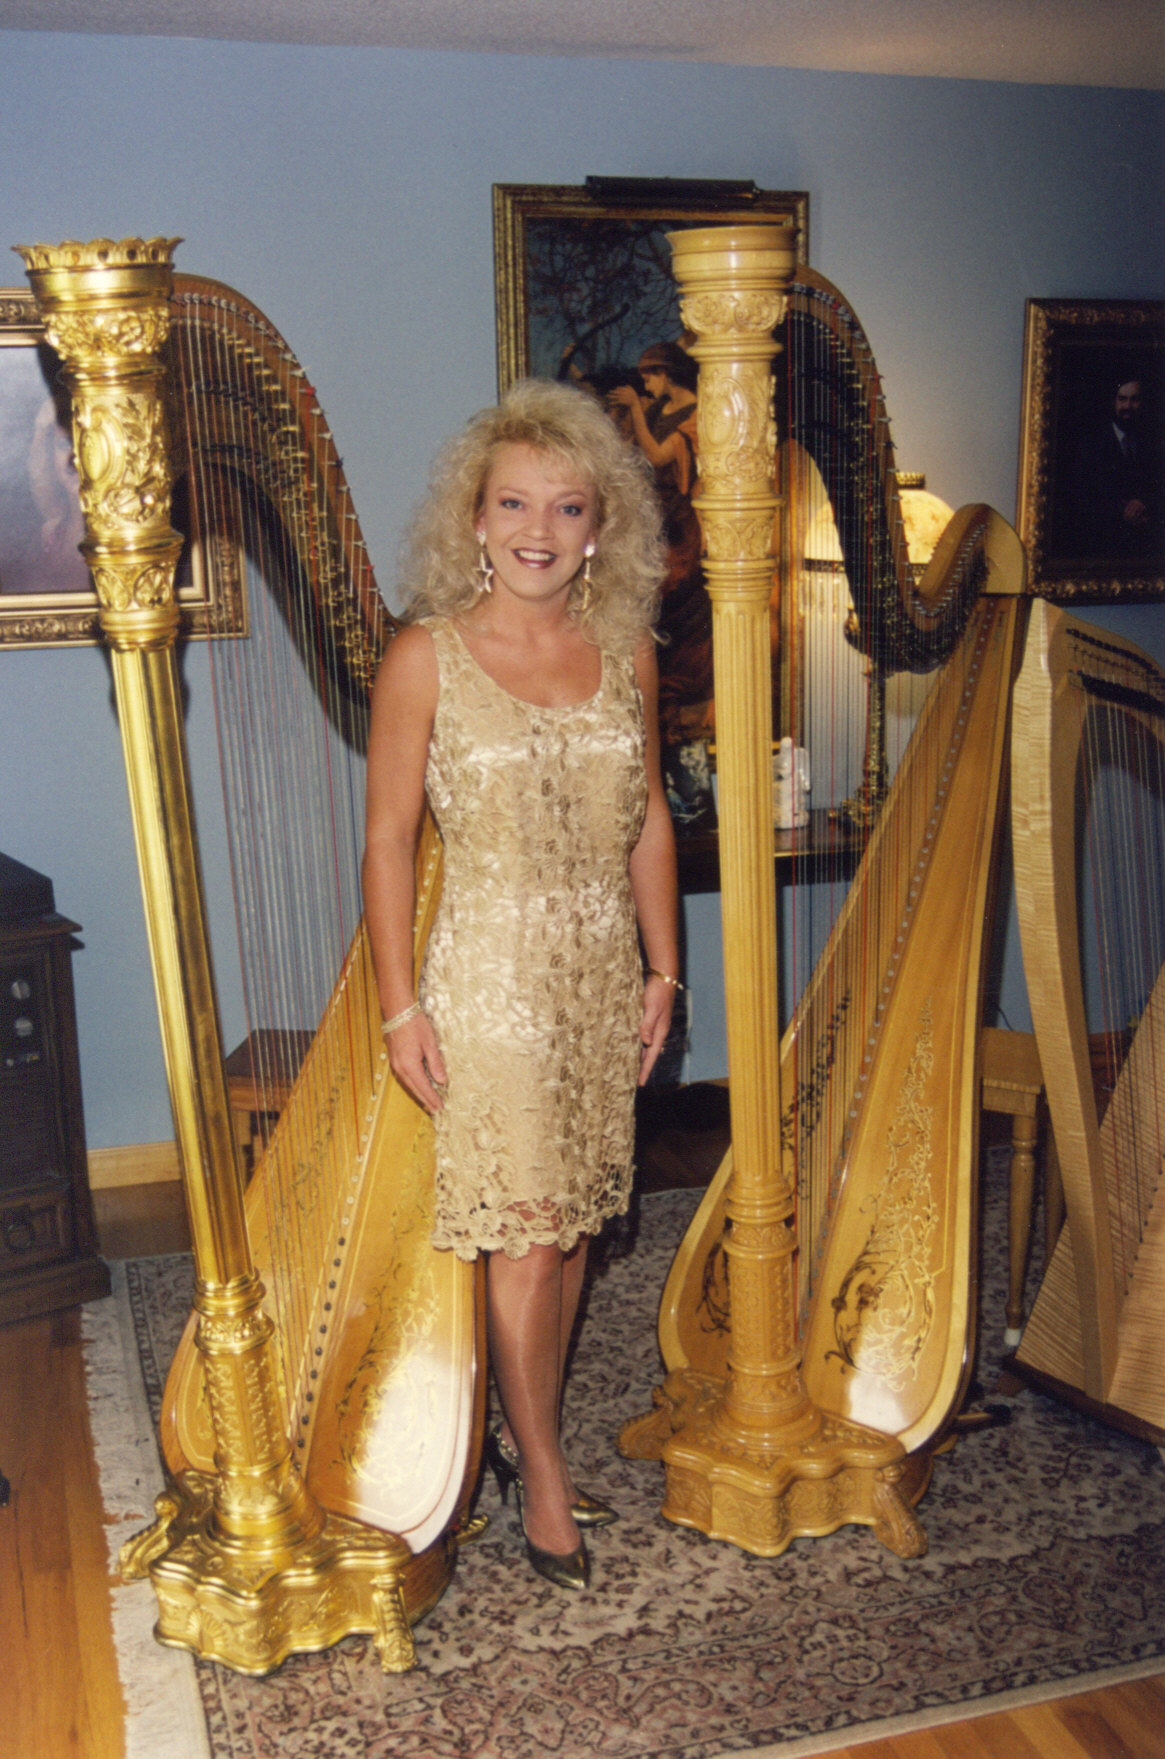 I Love Harps...The More The Merrier!